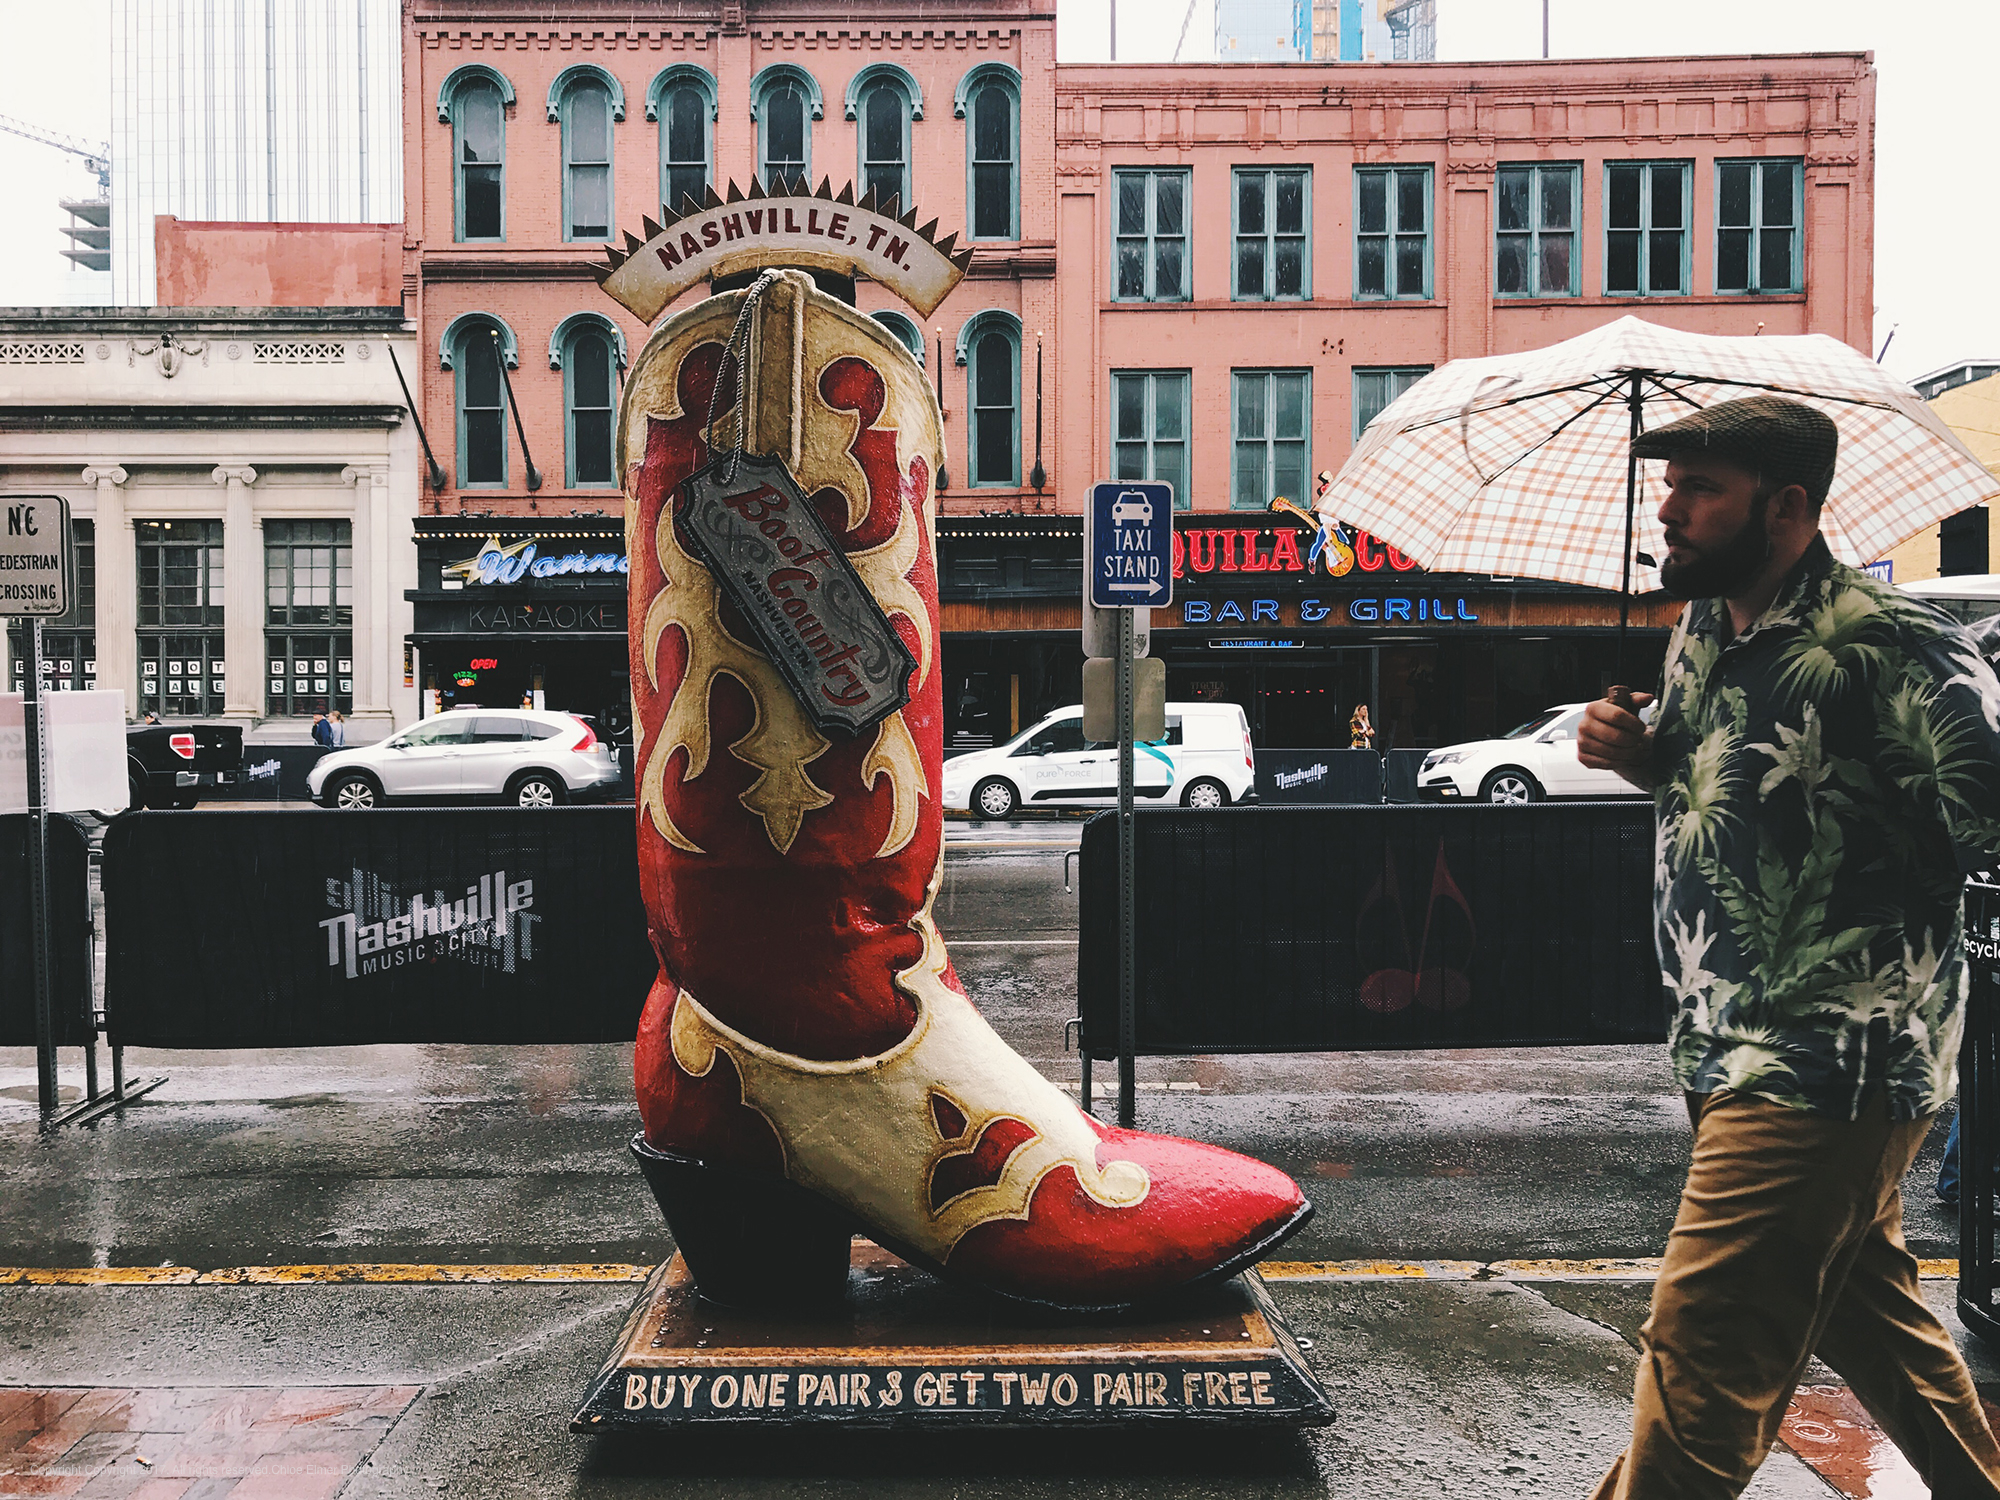 Nashville isn't all cowboy boots and cowboy hats...except it mostly is!